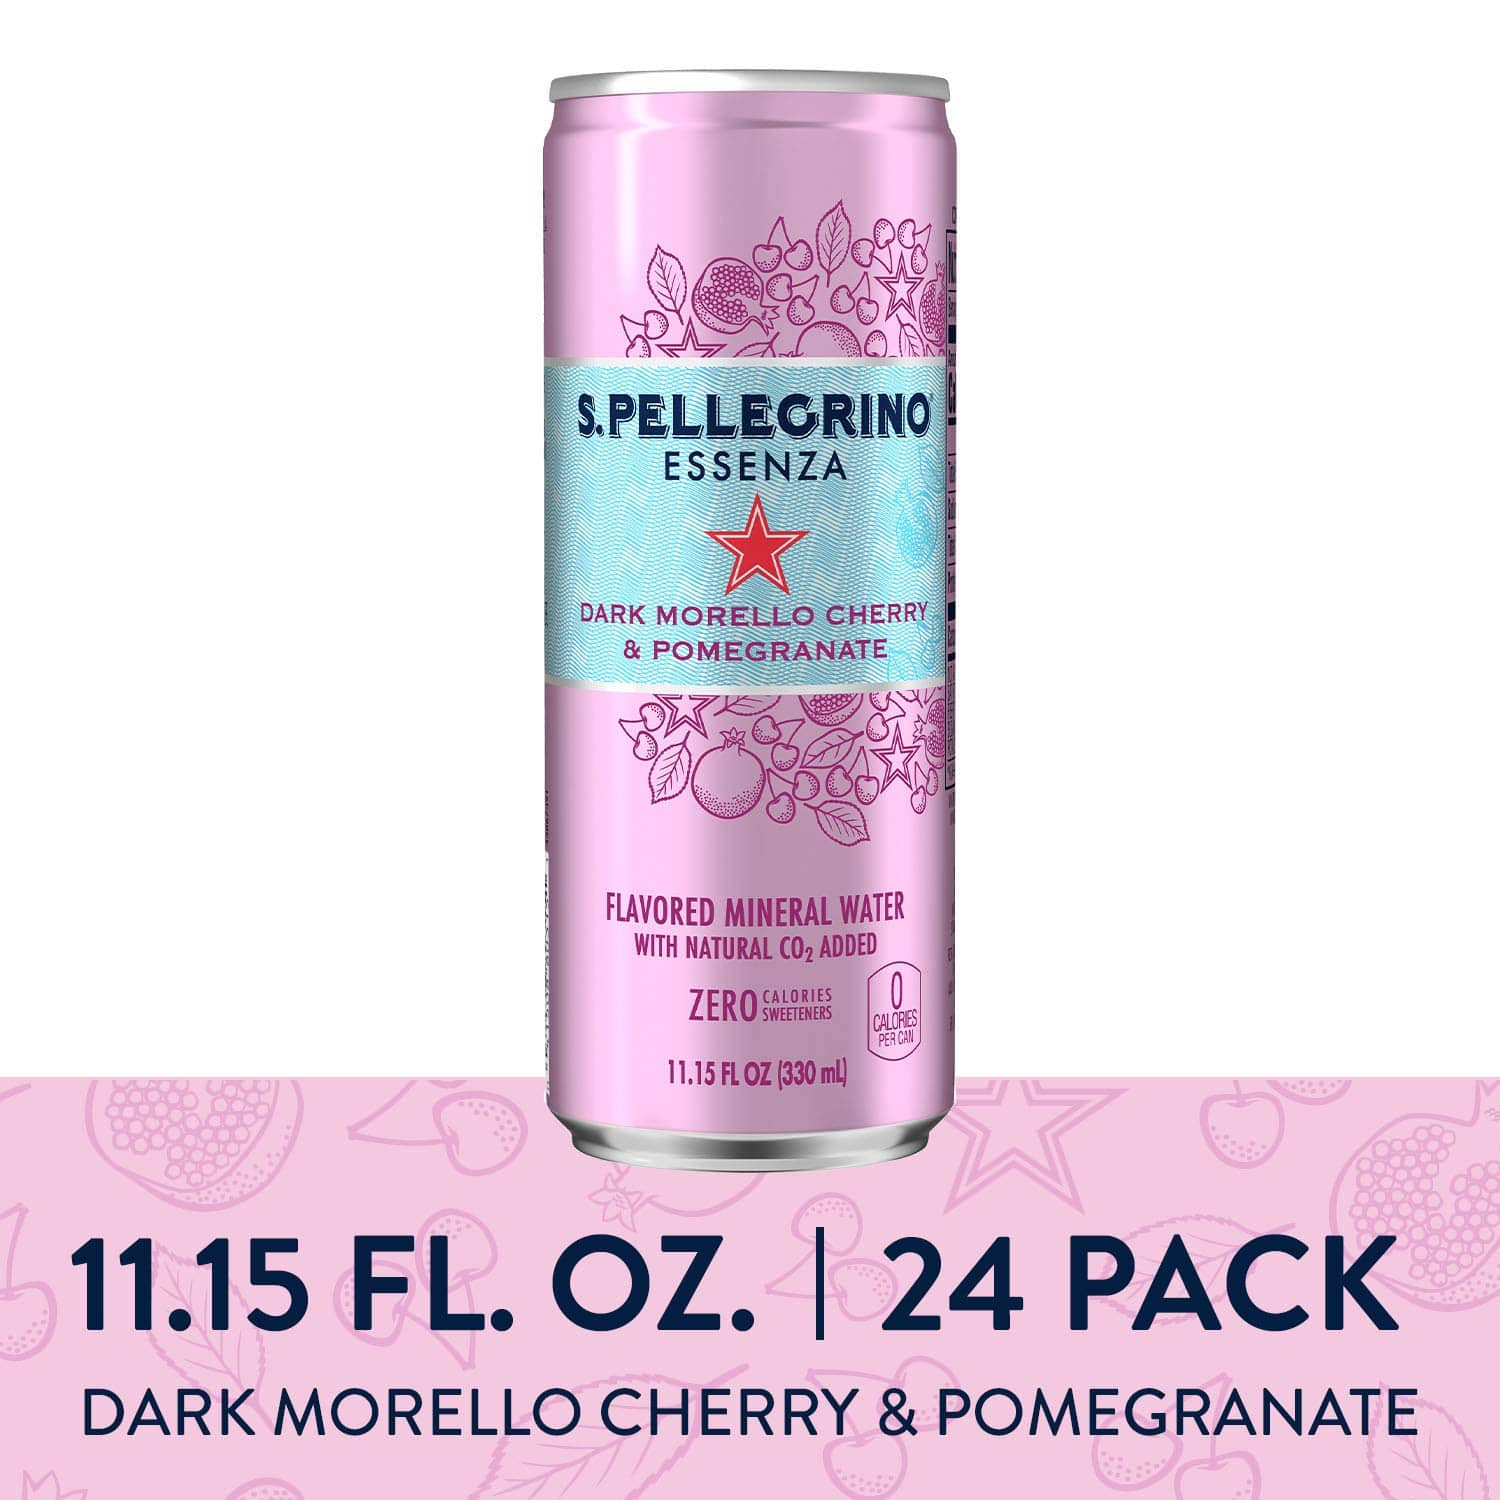 24 pack S.Pellegrino Essenza Dark Morello Cherry & Pomegranate Flavored Mineral Water, 11.15 Fl Oz: As low as $8.92 w/S&S